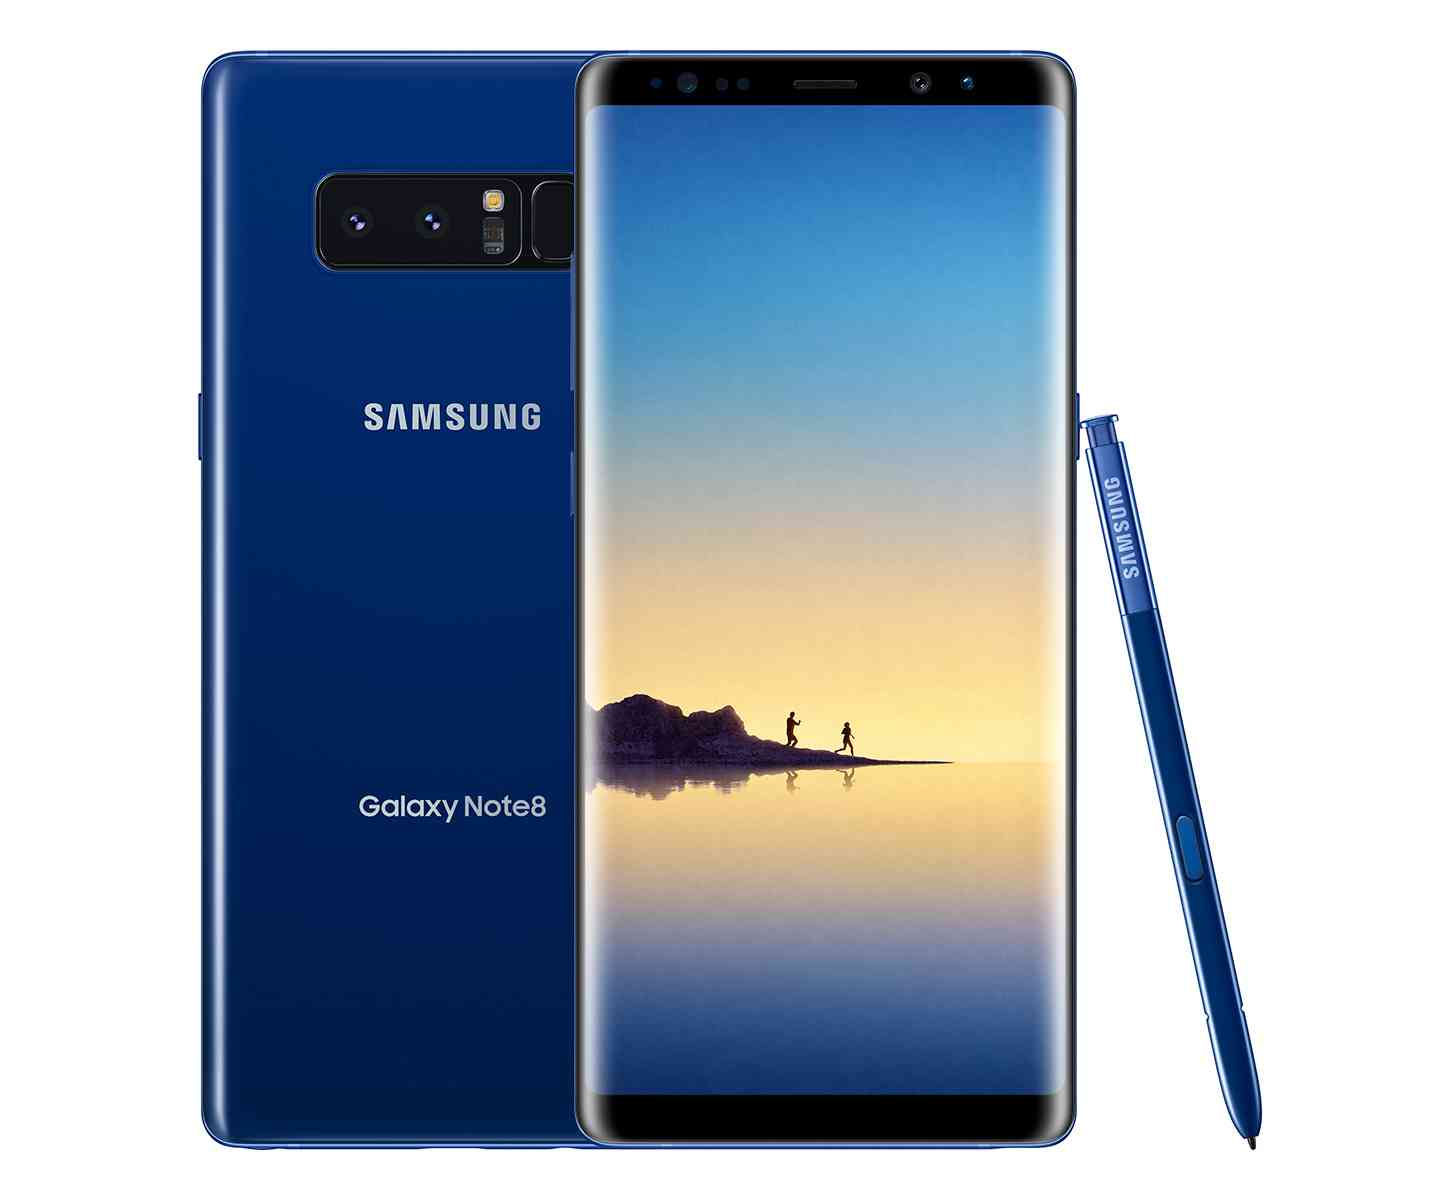 Samsung Galaxy Note 8 Deepsea Blue official images